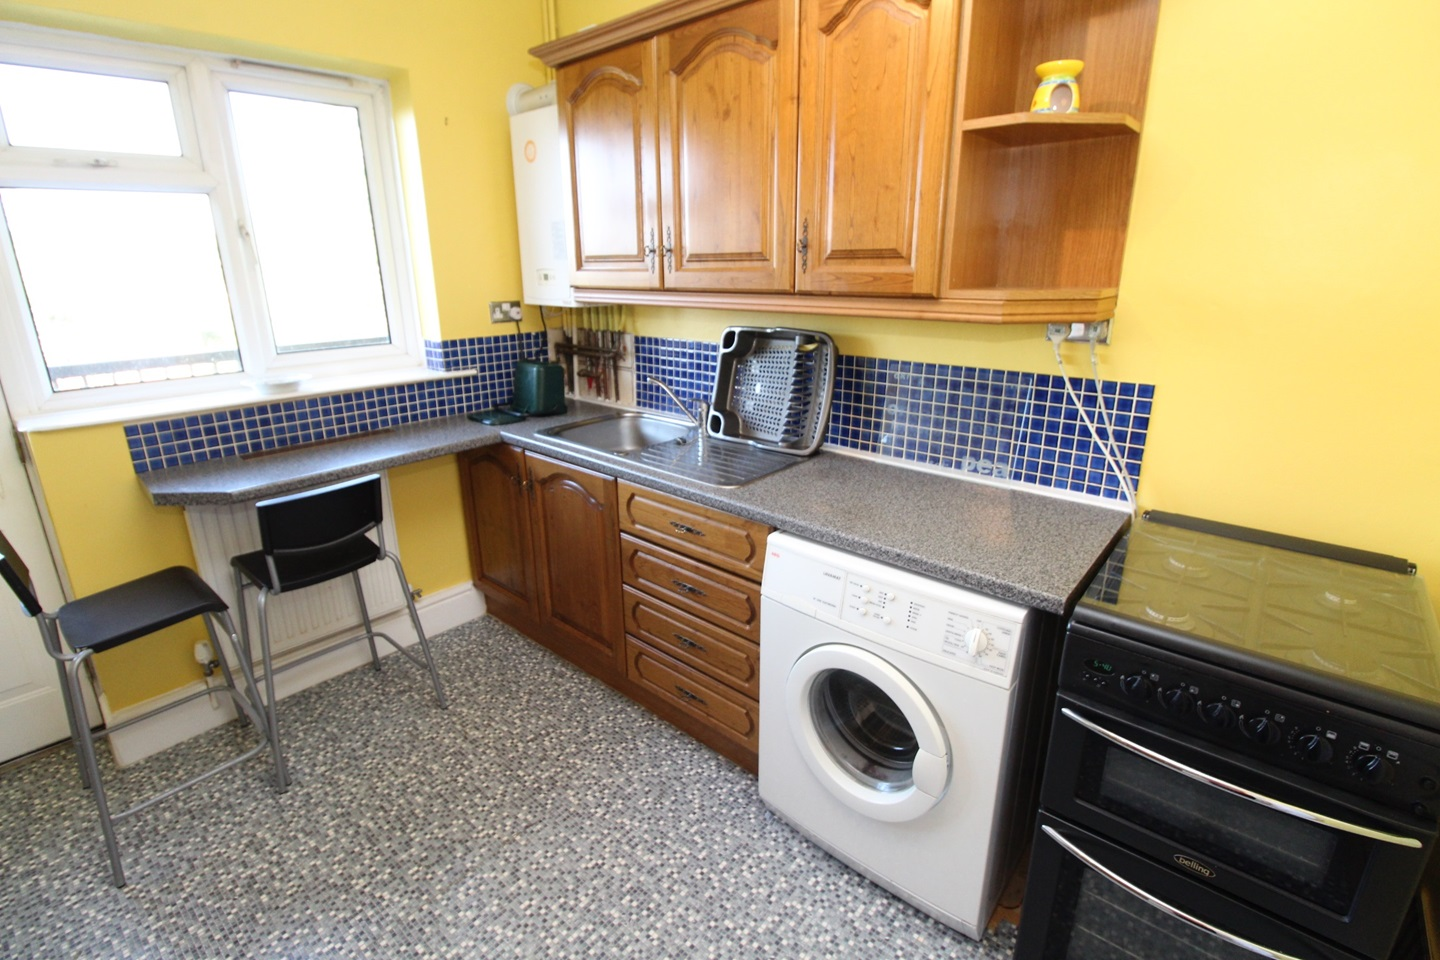 Stretford, Manchester - 2 Bed Flat, Wardle Close, M32 - To ...